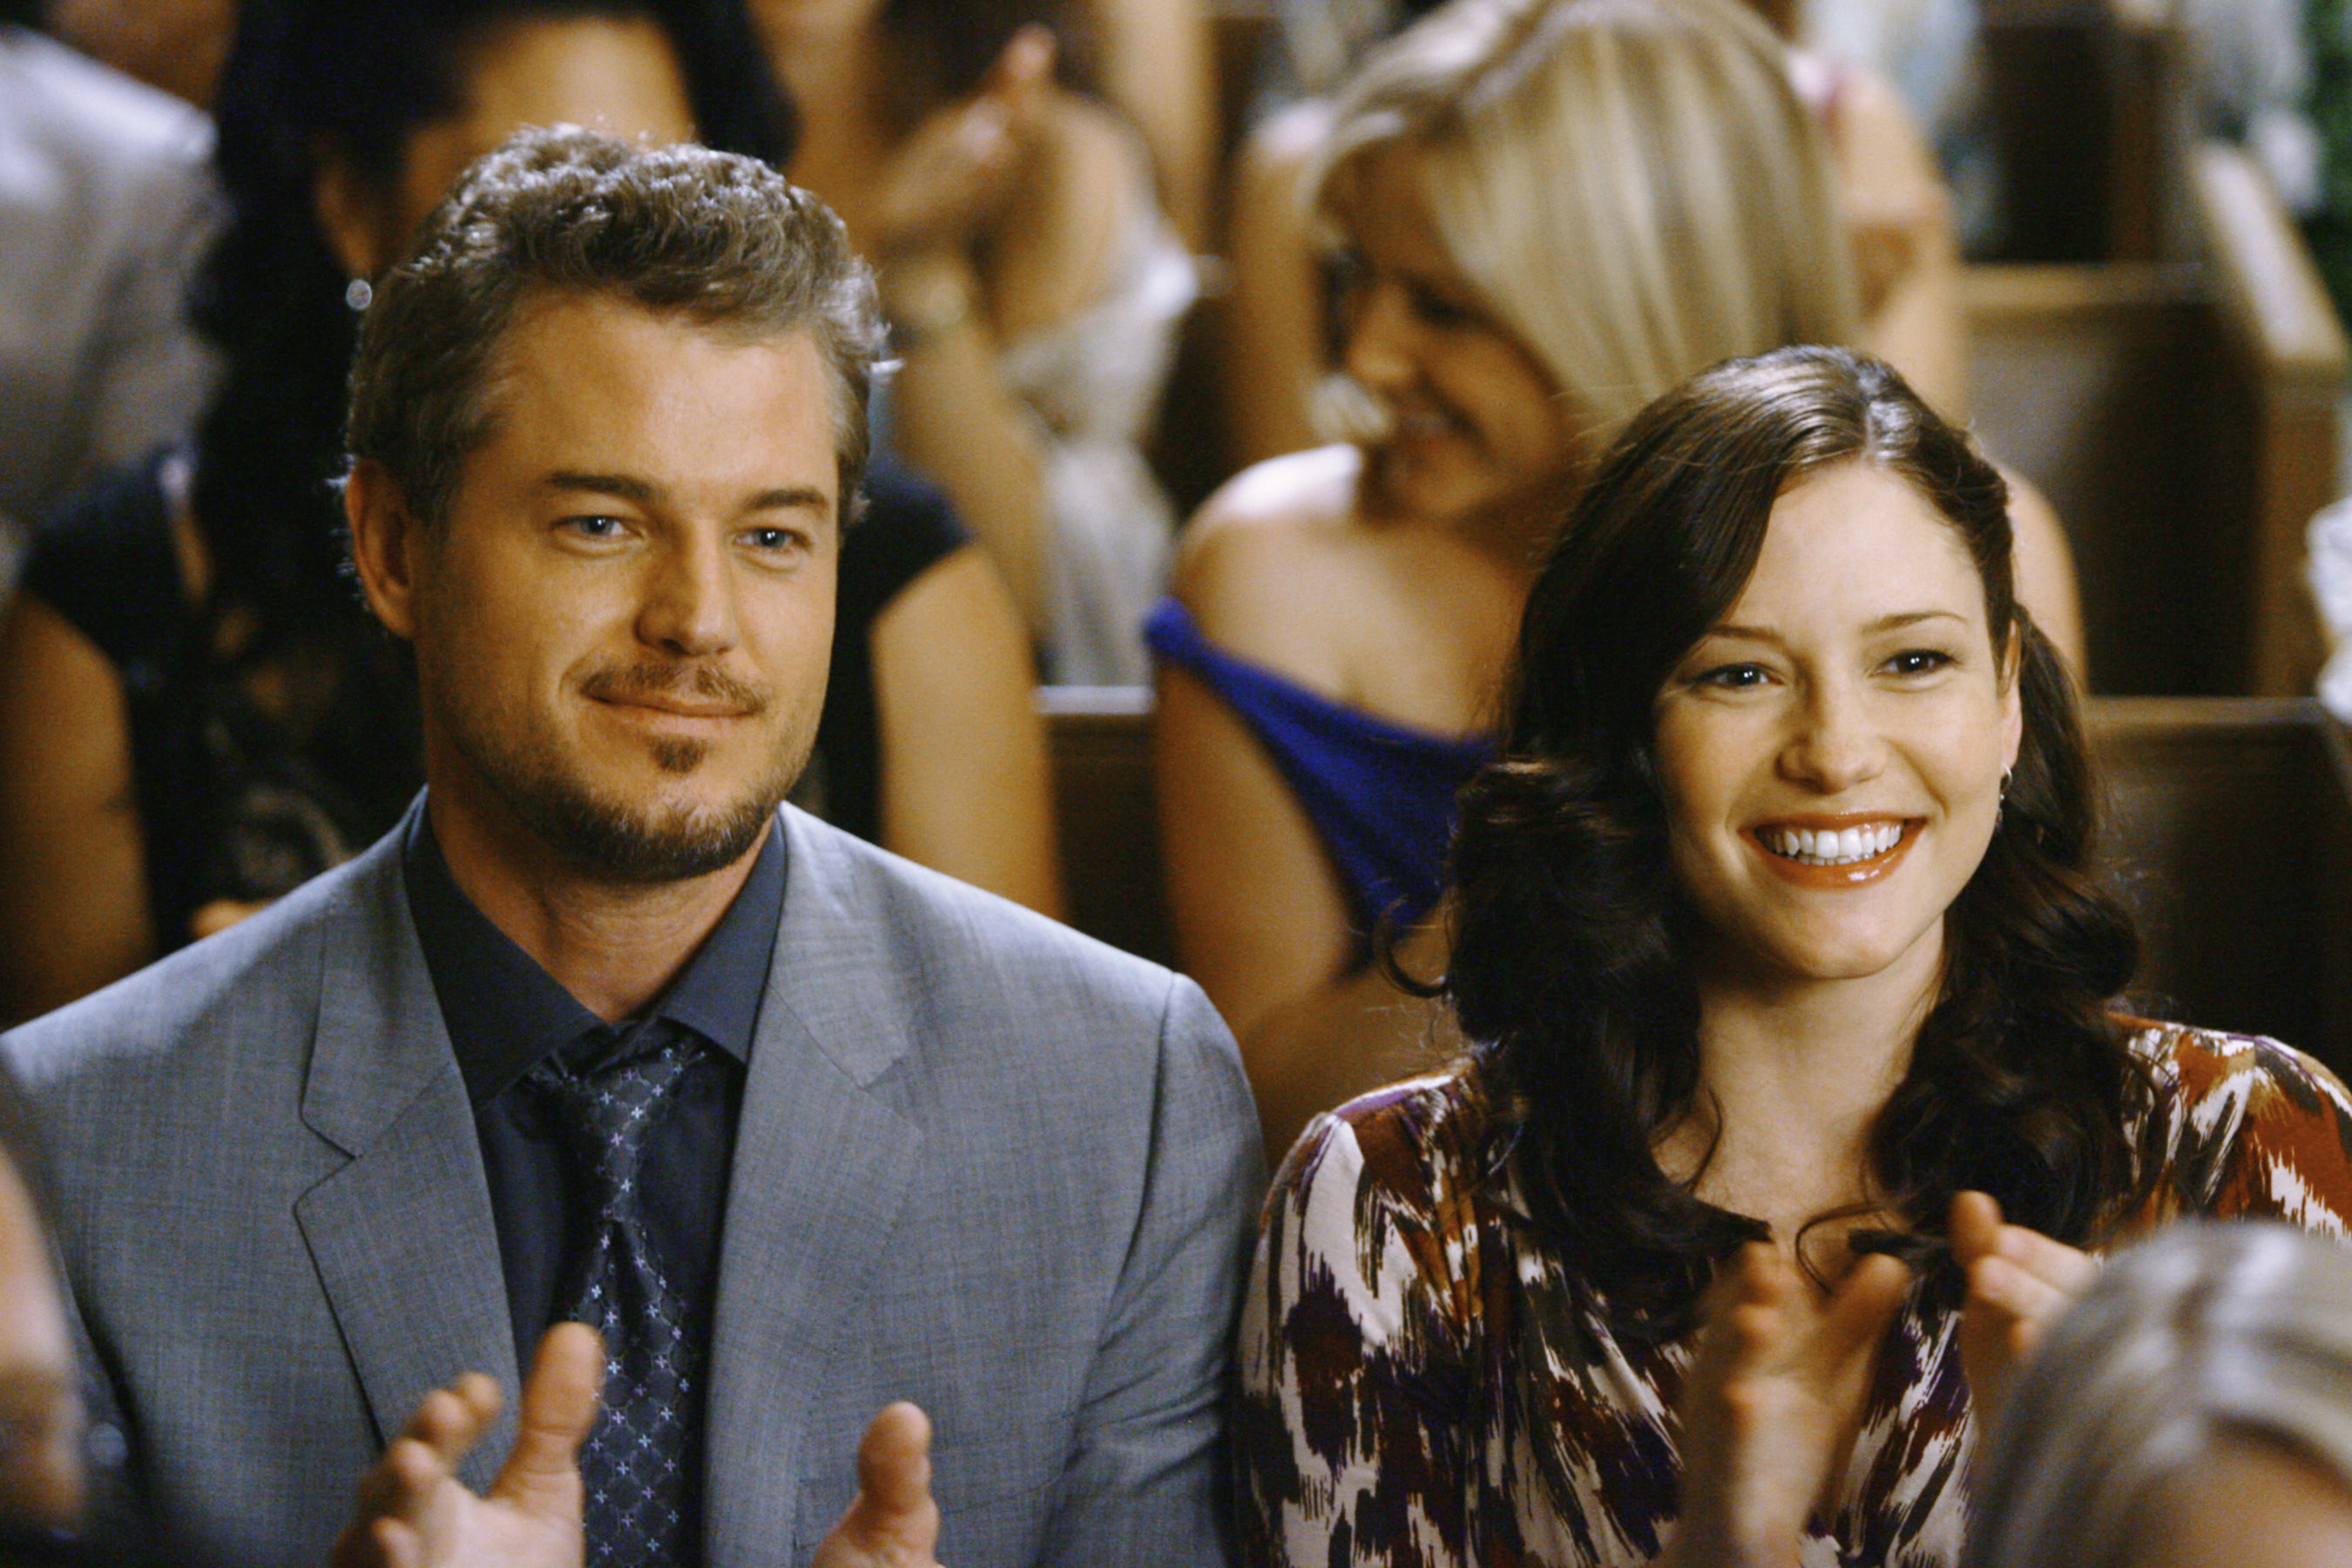 Lexie and Mark clapping